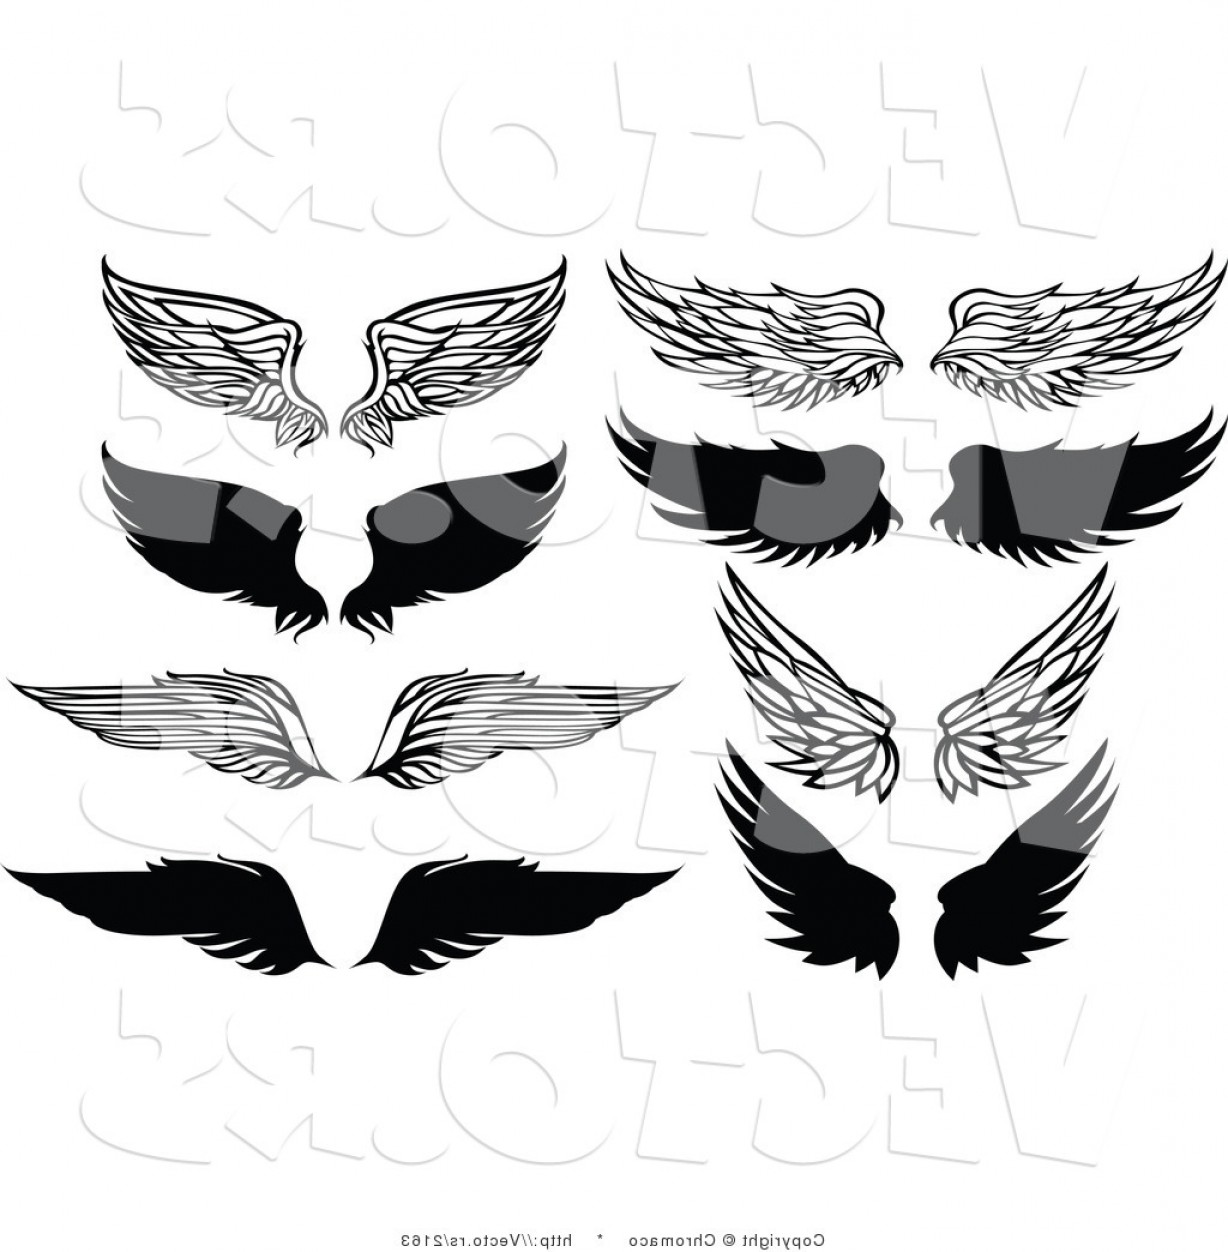 Vector Hi Res Black And White Wing: Vector Of Unique Feathered Wings Black And White Designs By Chromaco